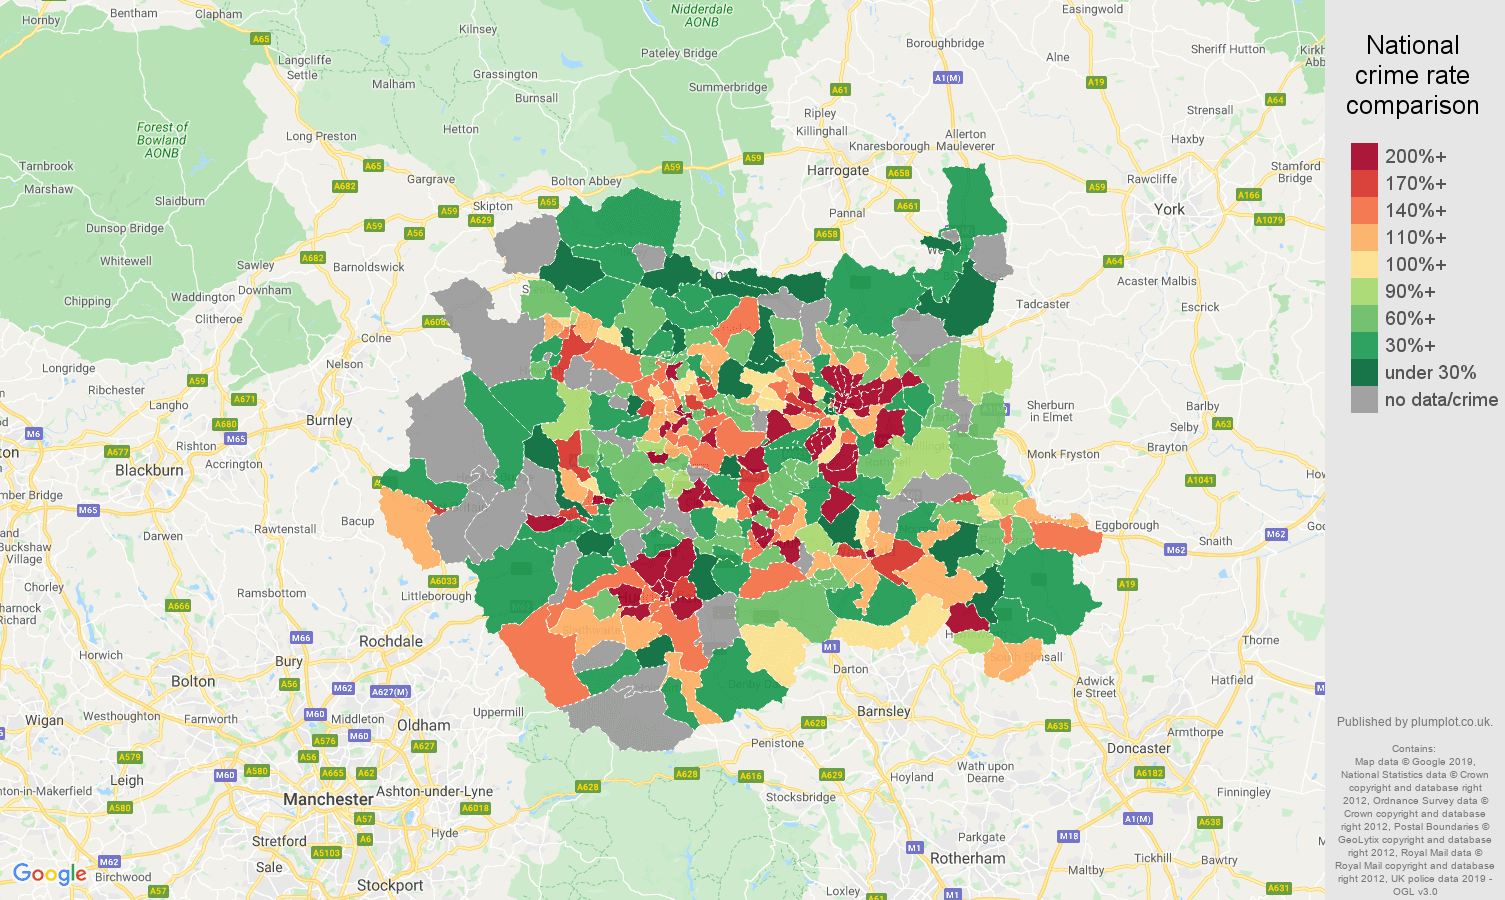 West Yorkshire possession of weapons crime rate comparison map